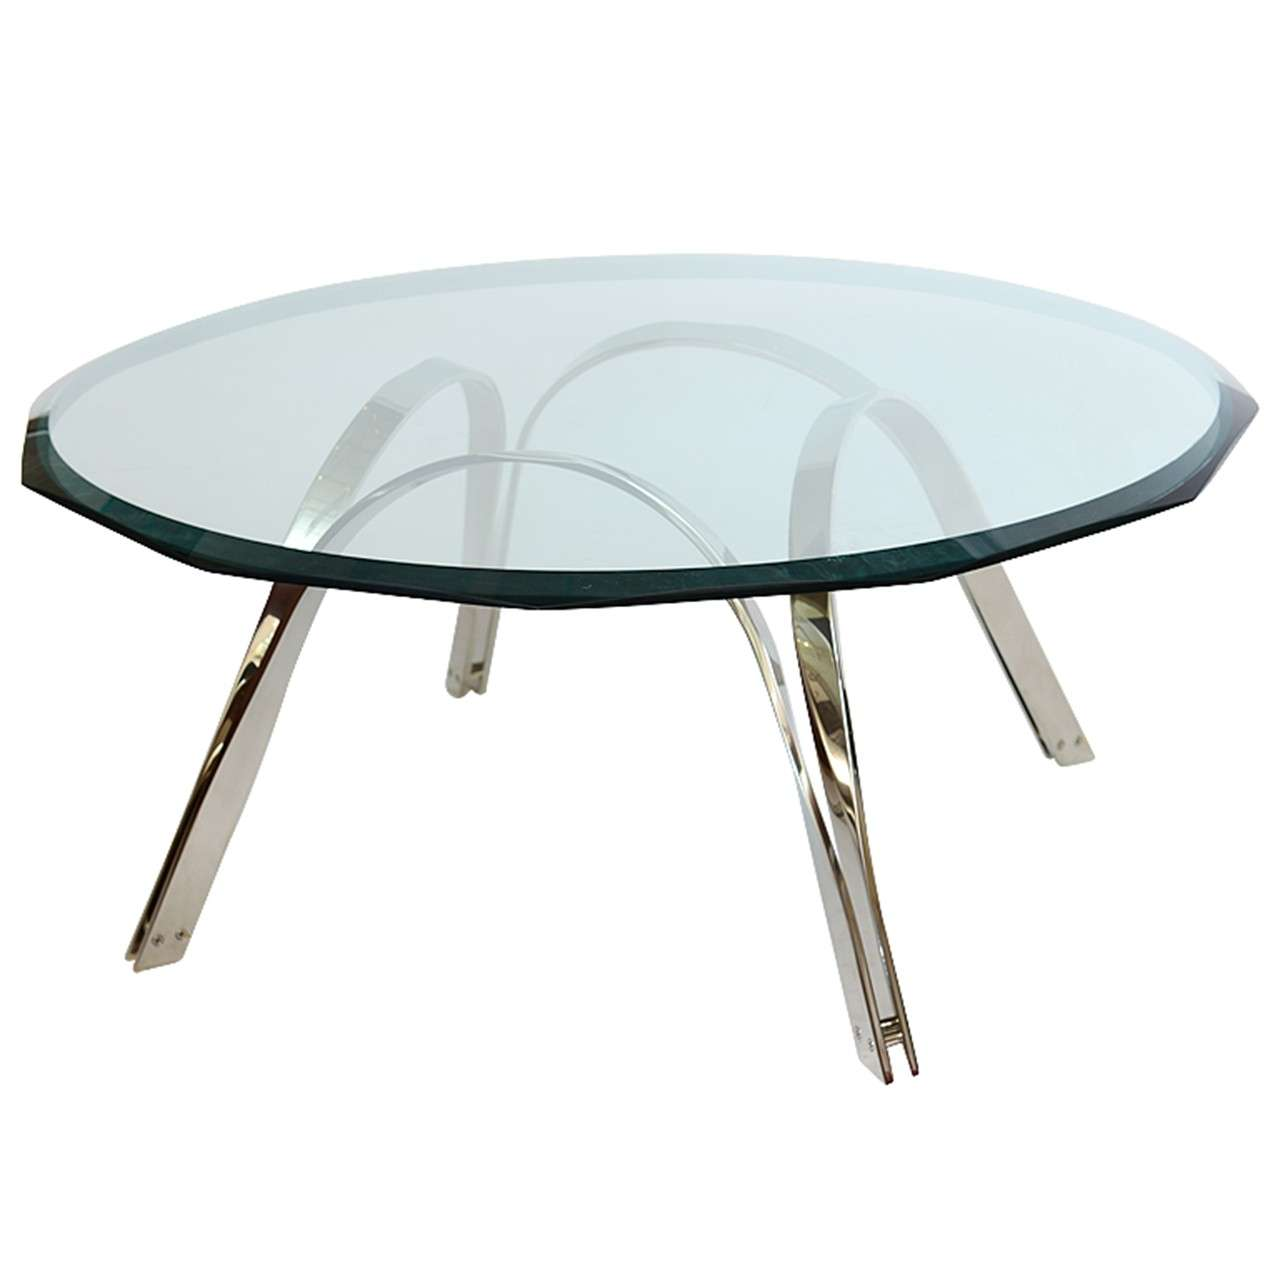 Roger sprunger style sculptural silver glass cocktail Vogue coffee table